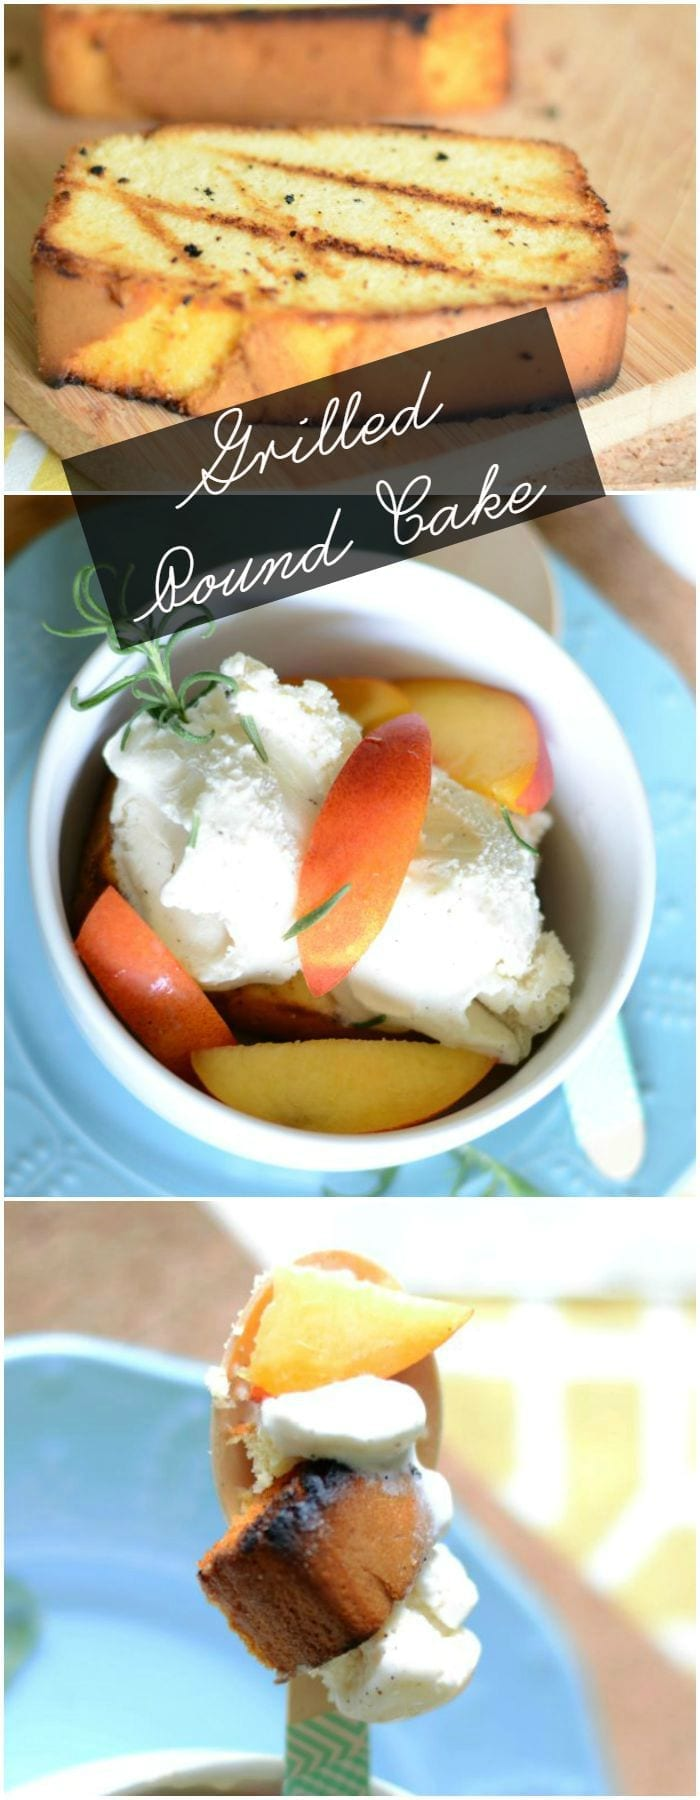 Grilled pound cake and nectarines dessert.  Add some rosemary and vanilla bean ice cream and it's perfect!  It's delicious